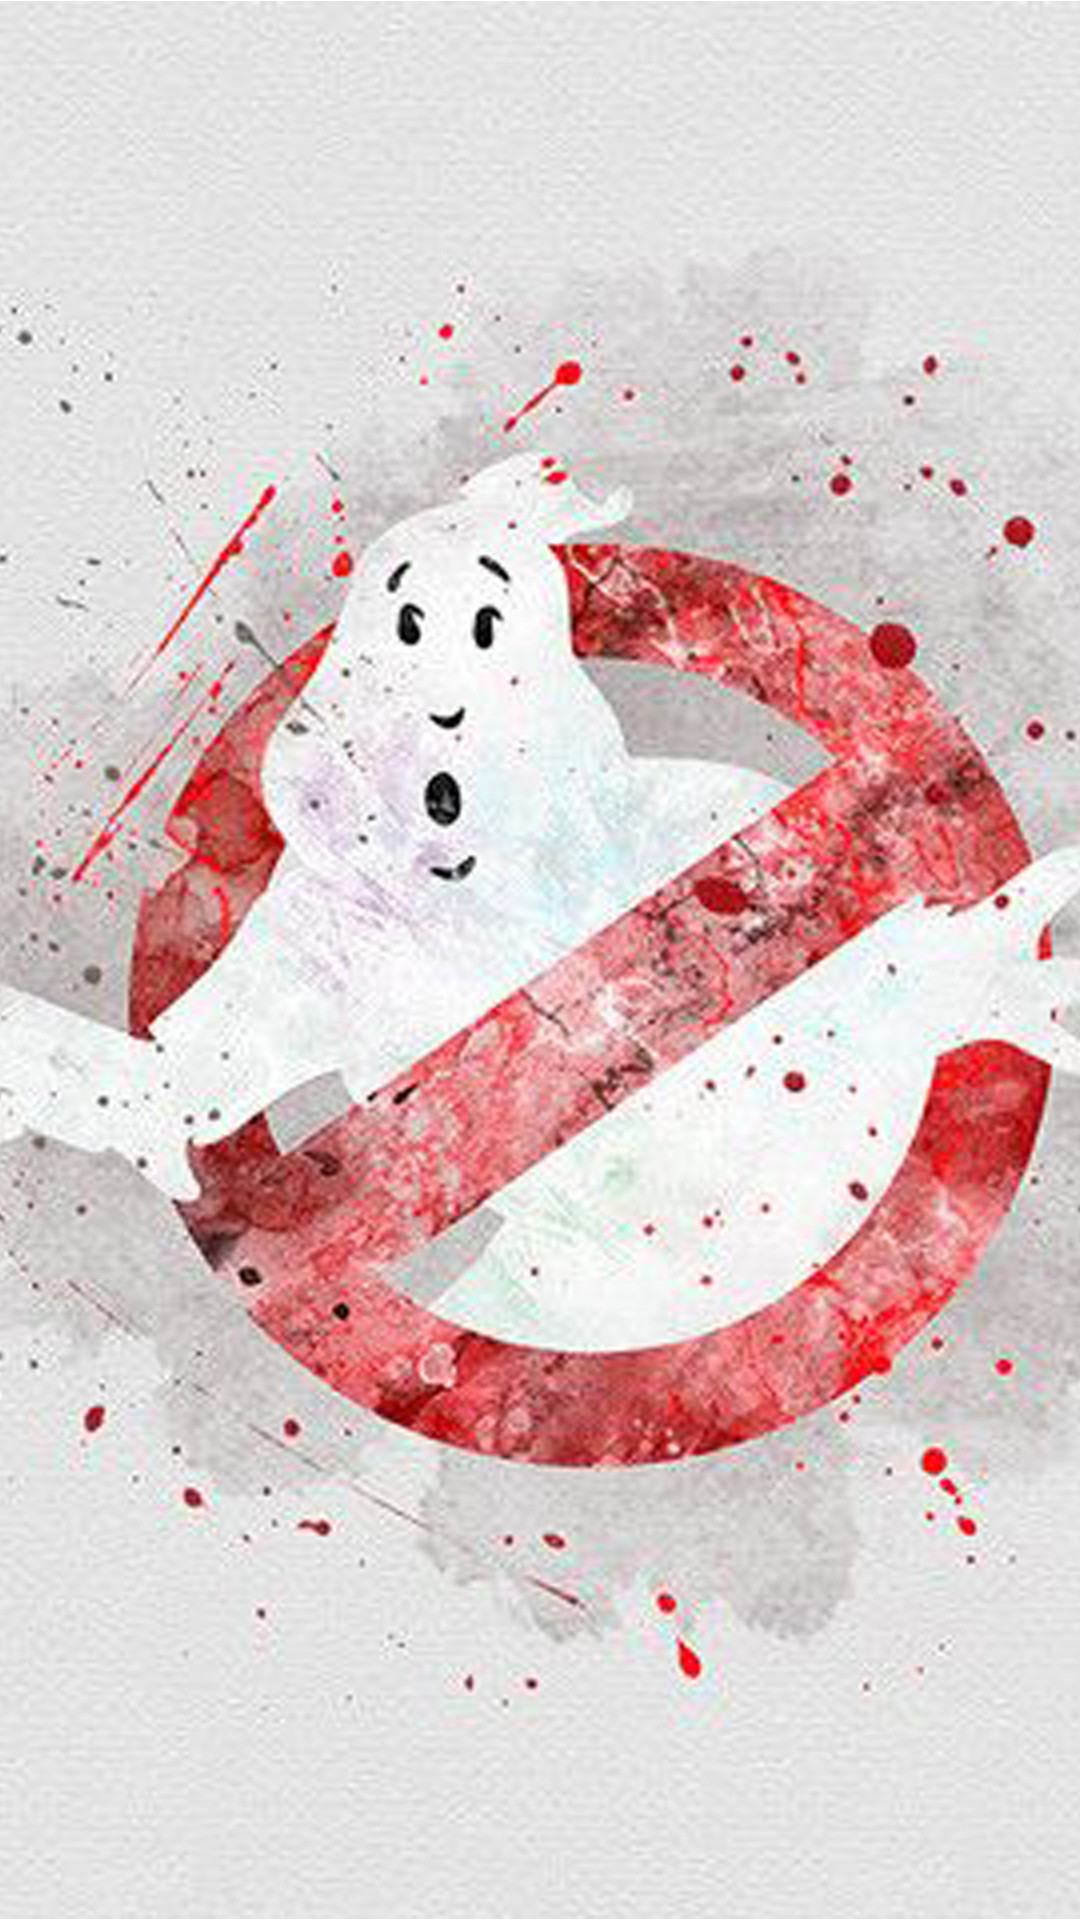 ghostbuster wallpaper (74+ images)